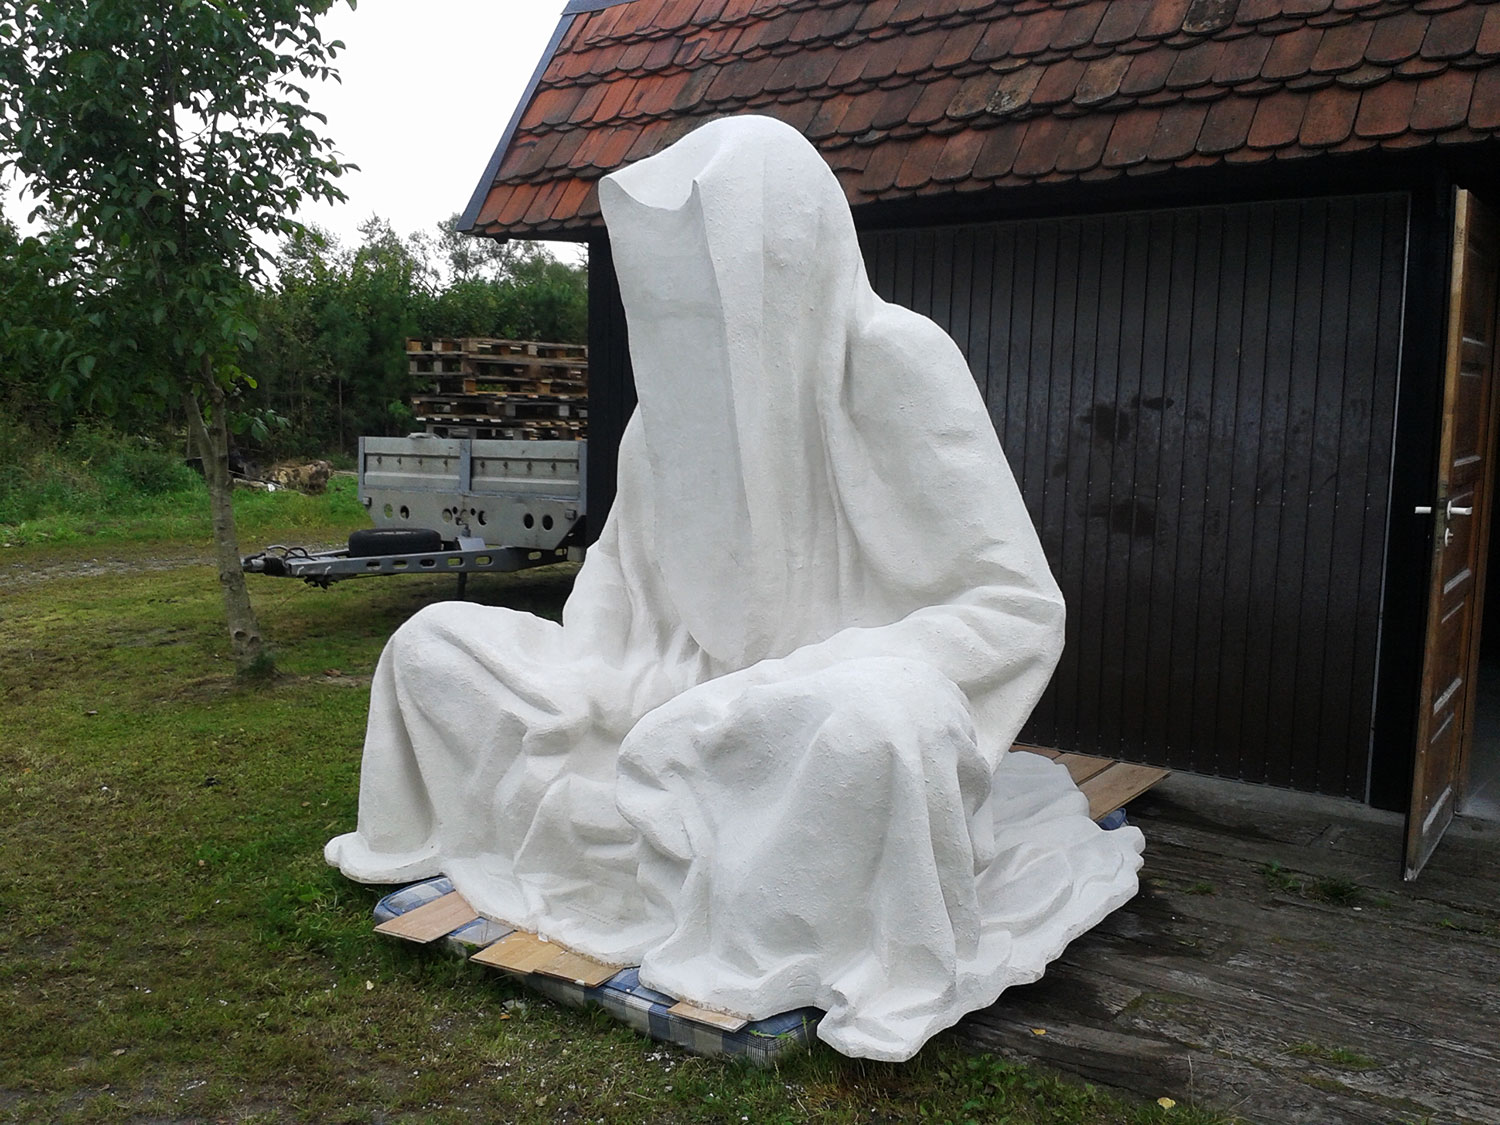 large-scale-sculpture-monumental-statue-3d-format-guardians-of-time-by-Manfred-Kili-Kielnhofer-plastic-arts-contemporary-art-design-antique-28o